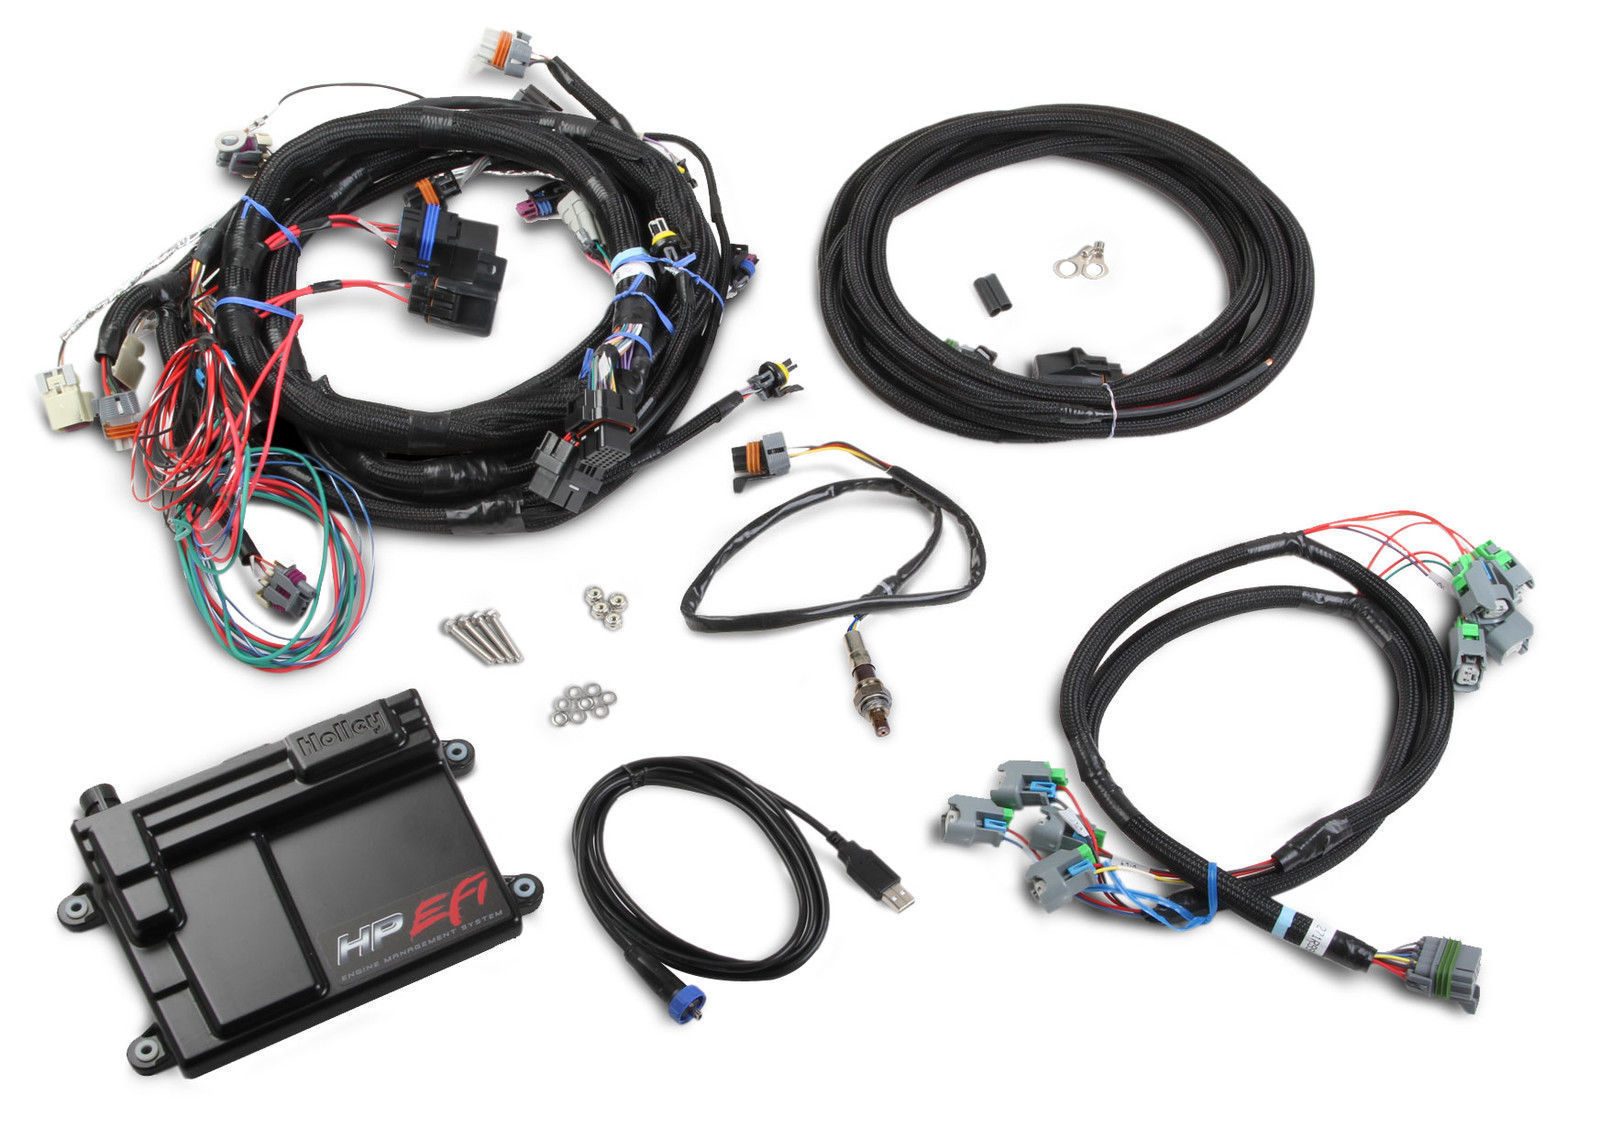 hight resolution of holley hp efi ecu harness kit ho550 603 suit gm ls2 ls3 ls7 58x crank sensor